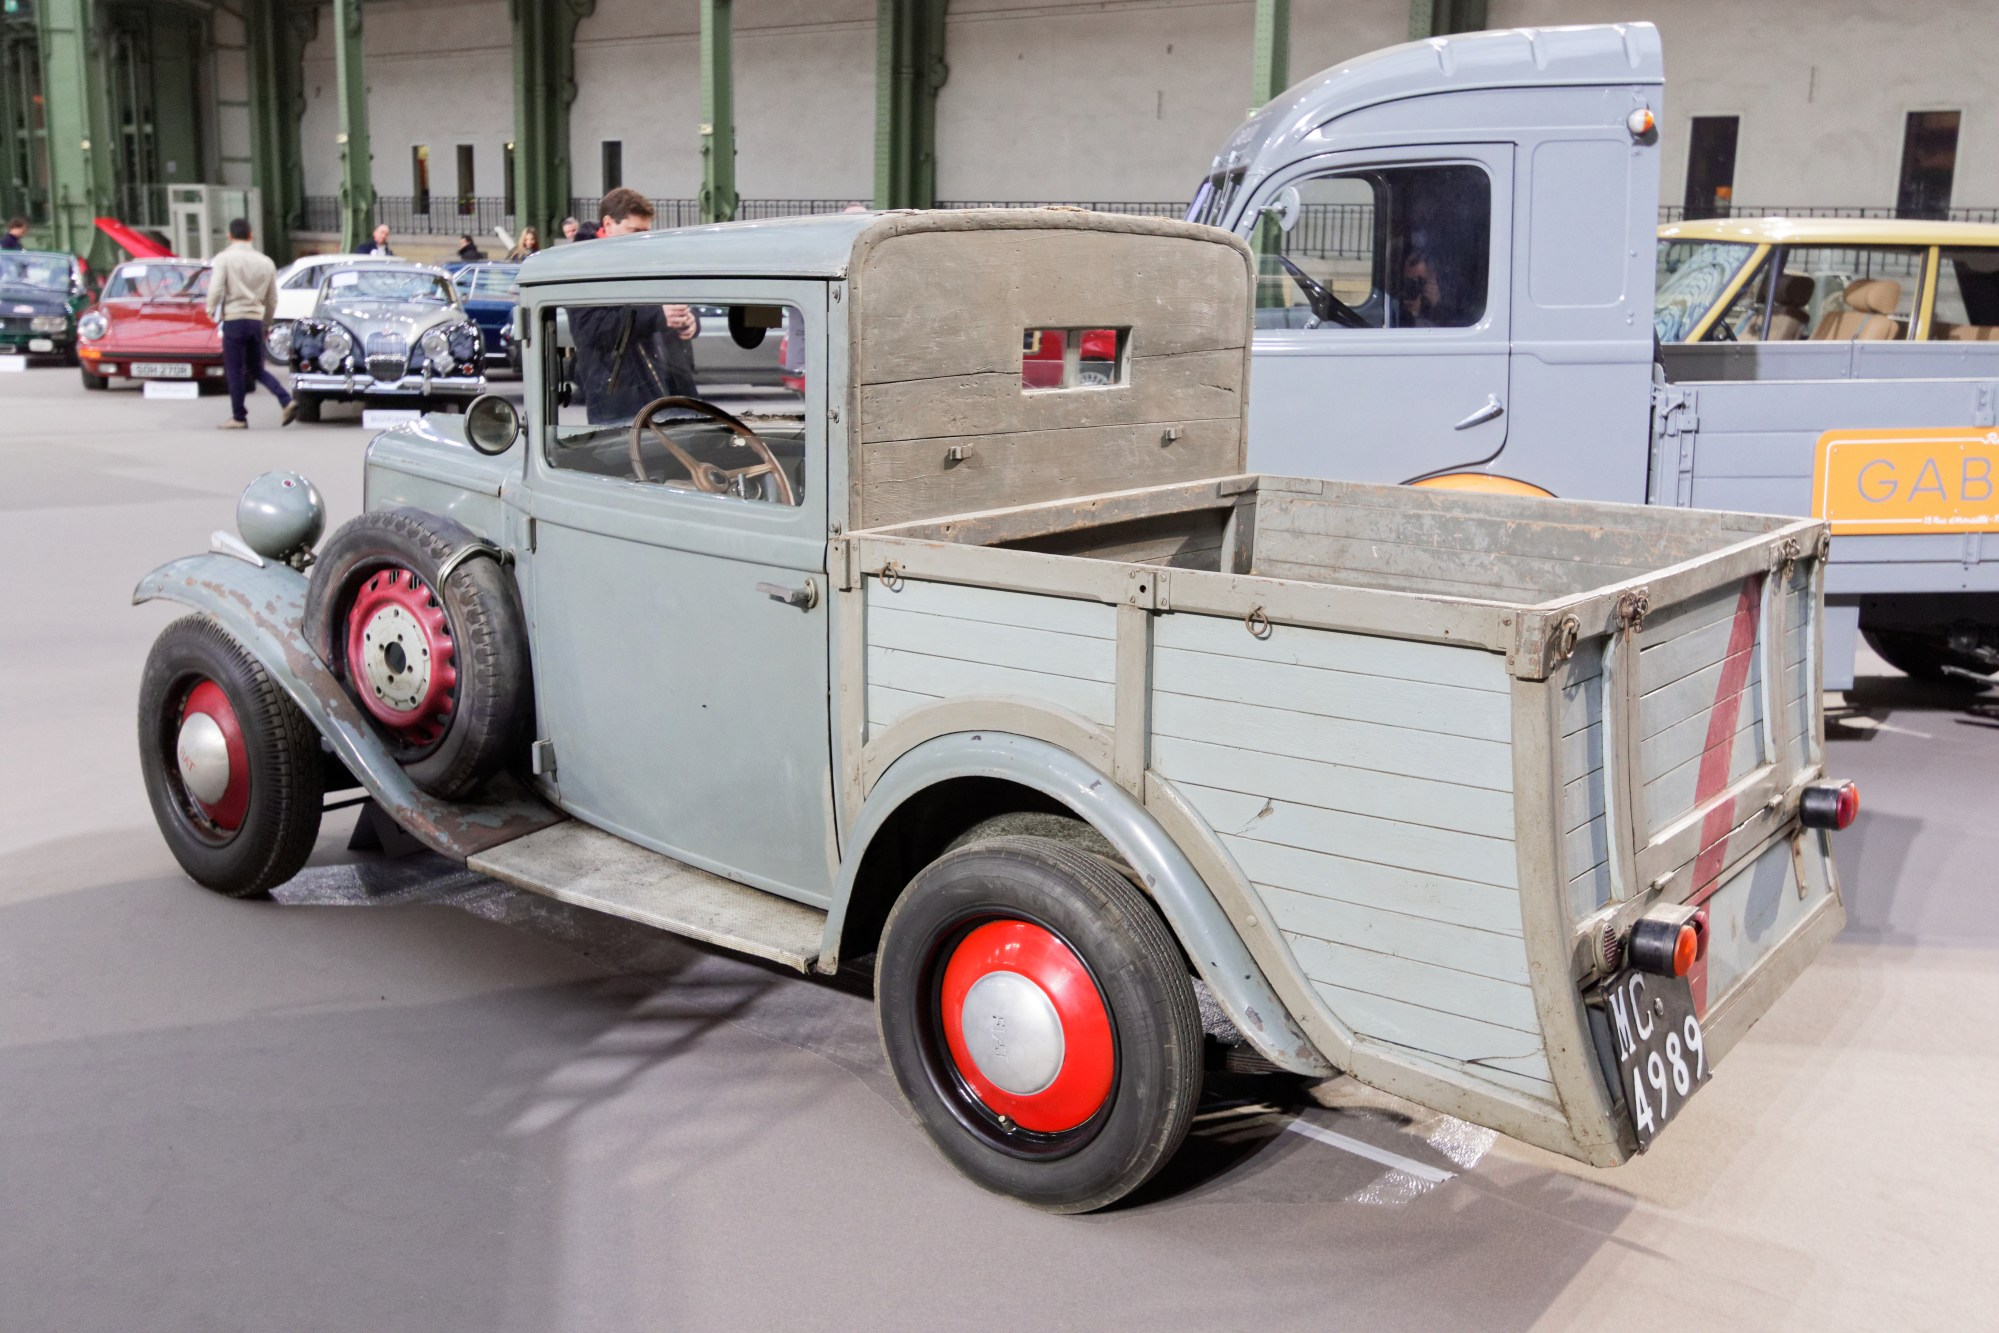 hight resolution of file paris bonhams 2017 fiat 508 balilla pick up 1933 004 jpg